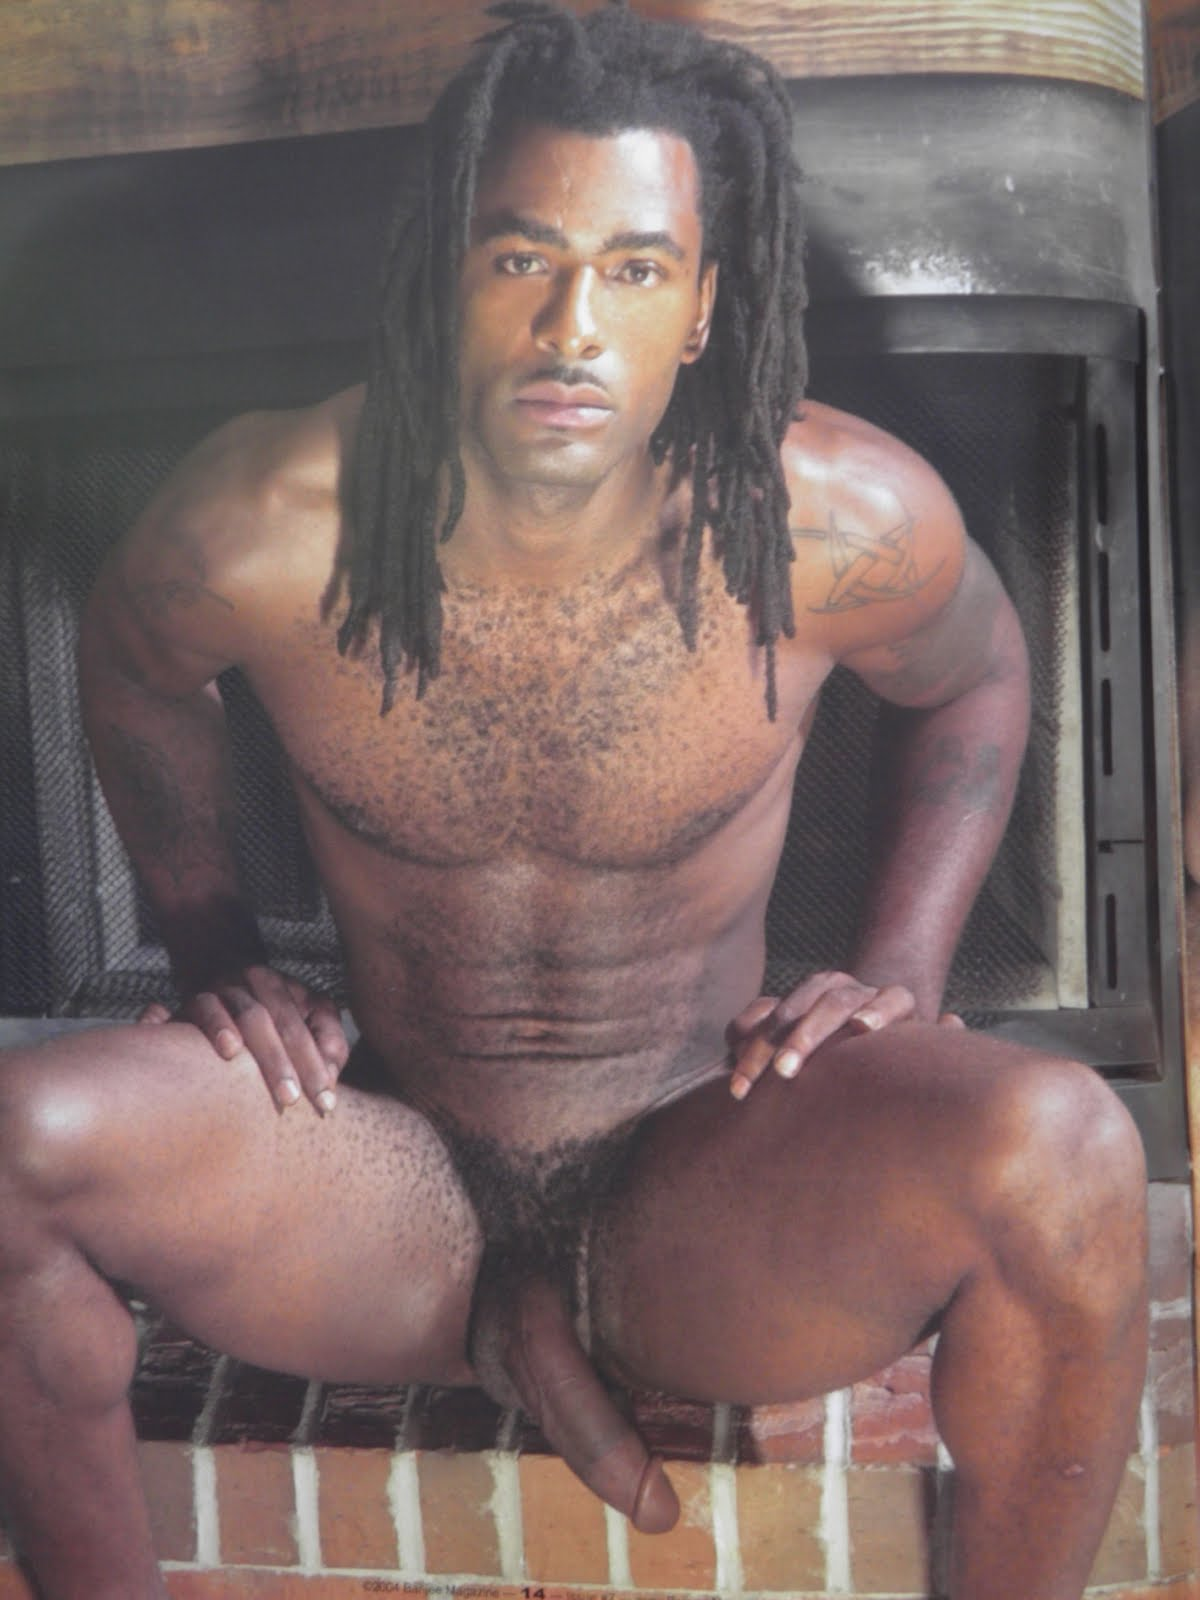 With dreads black men hot